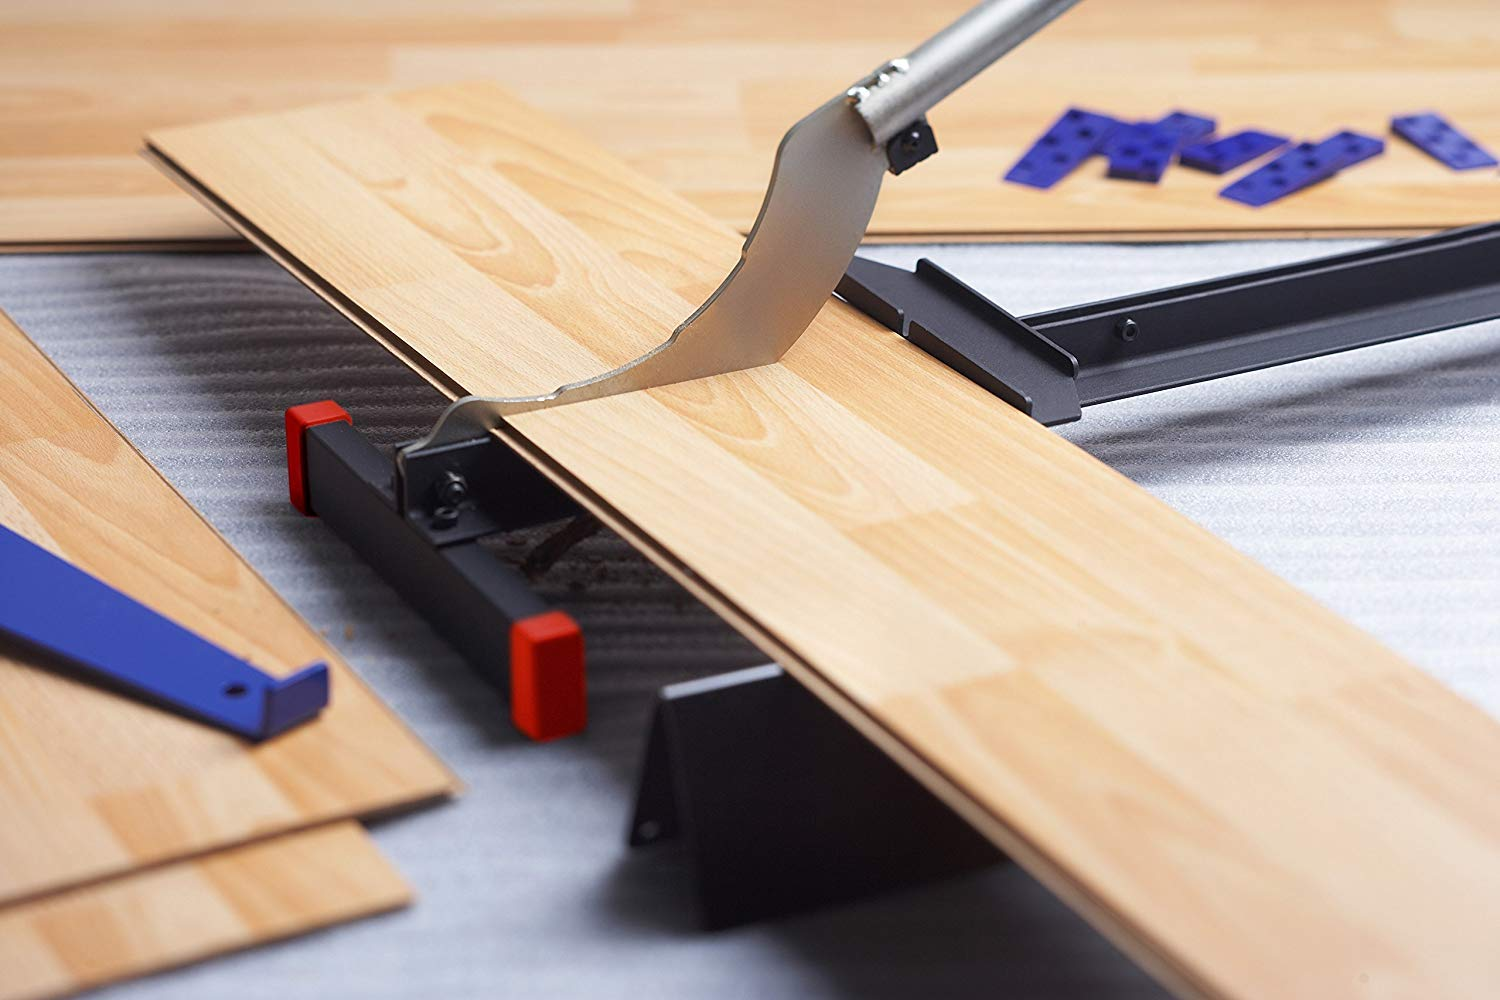 Laminate Flooring and Siding Cutter EY-210 For 8-inch & 12-inch wide floor. Best Buy! by MANTISTOL